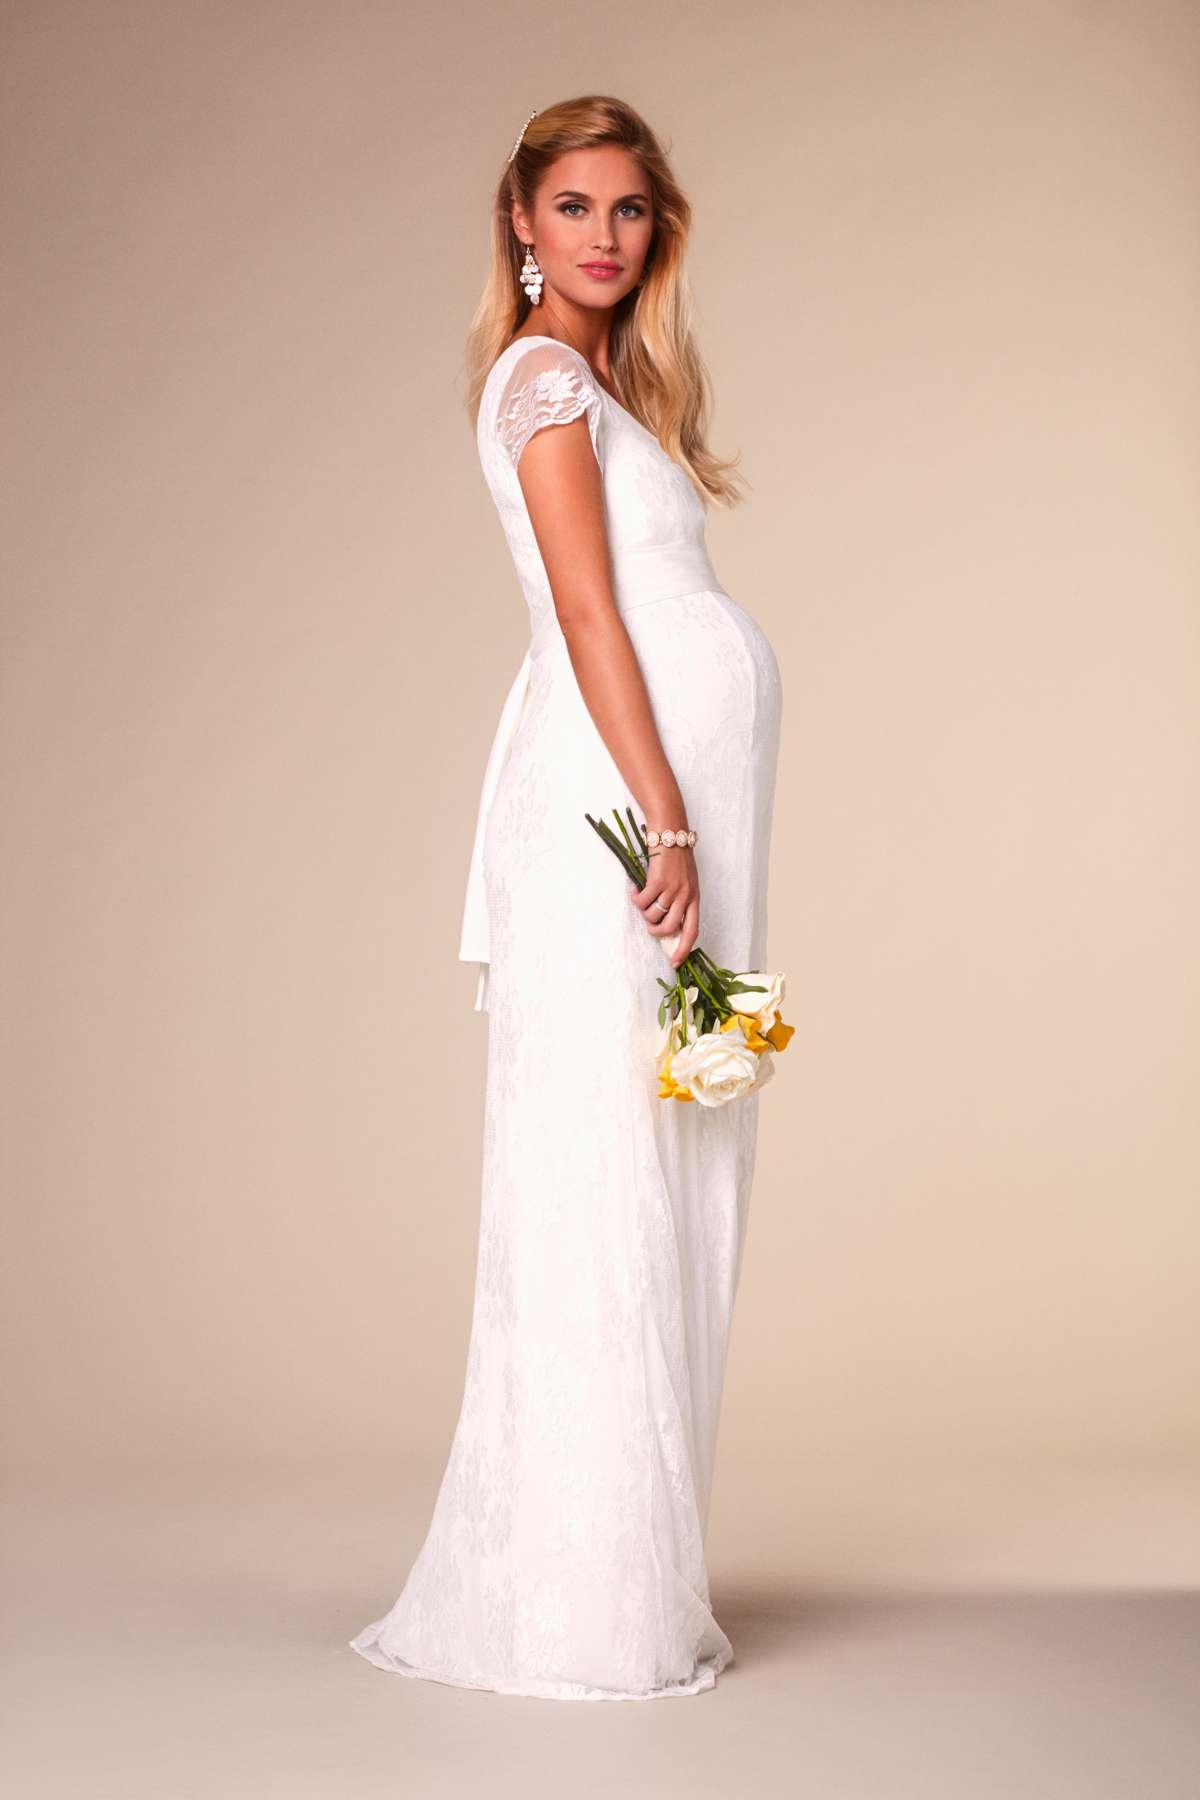 Stunning maternity wedding dresses love our wedding for Nursing dresses for wedding